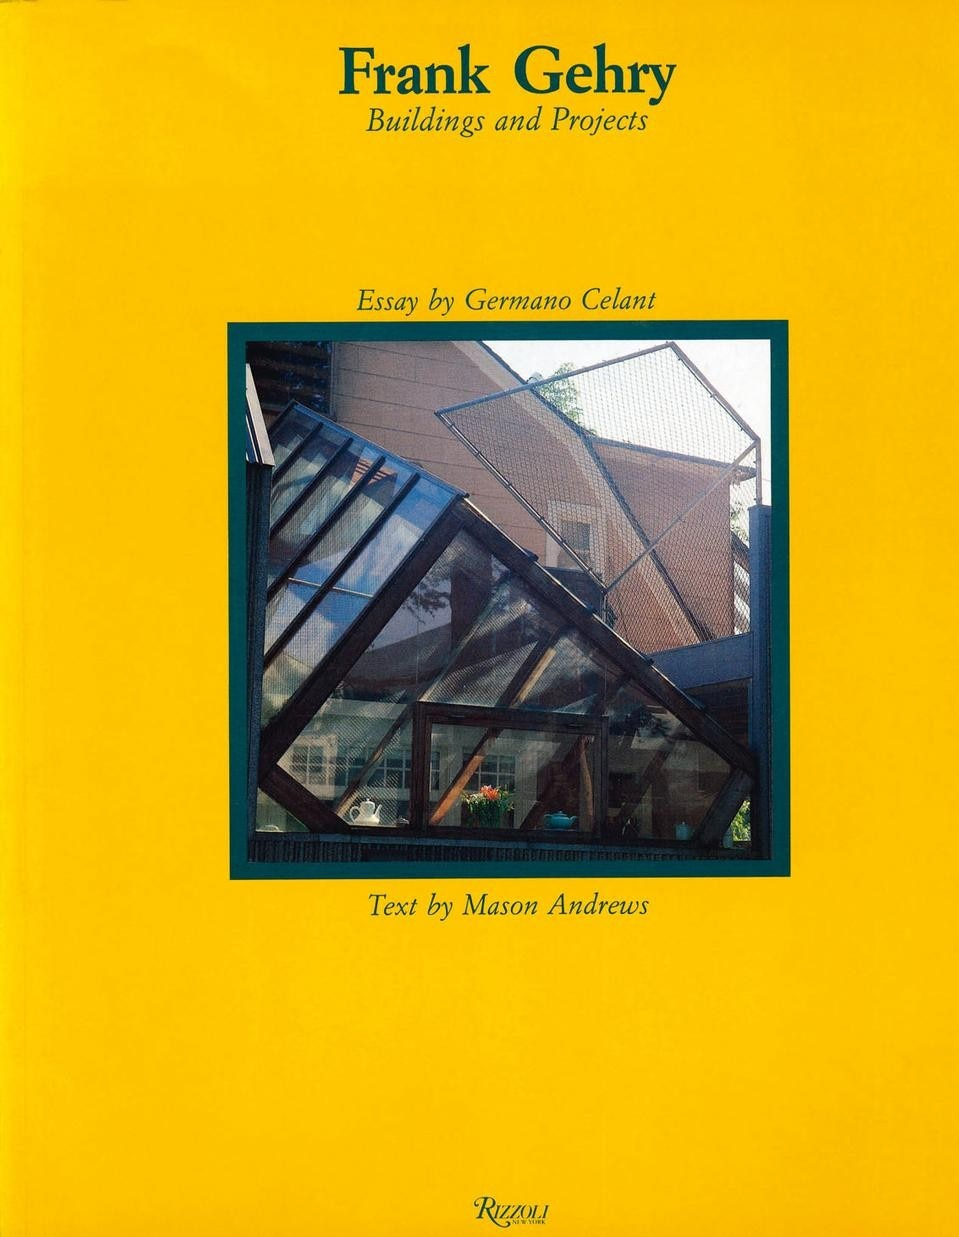 Cover of the book Frank Gehry.